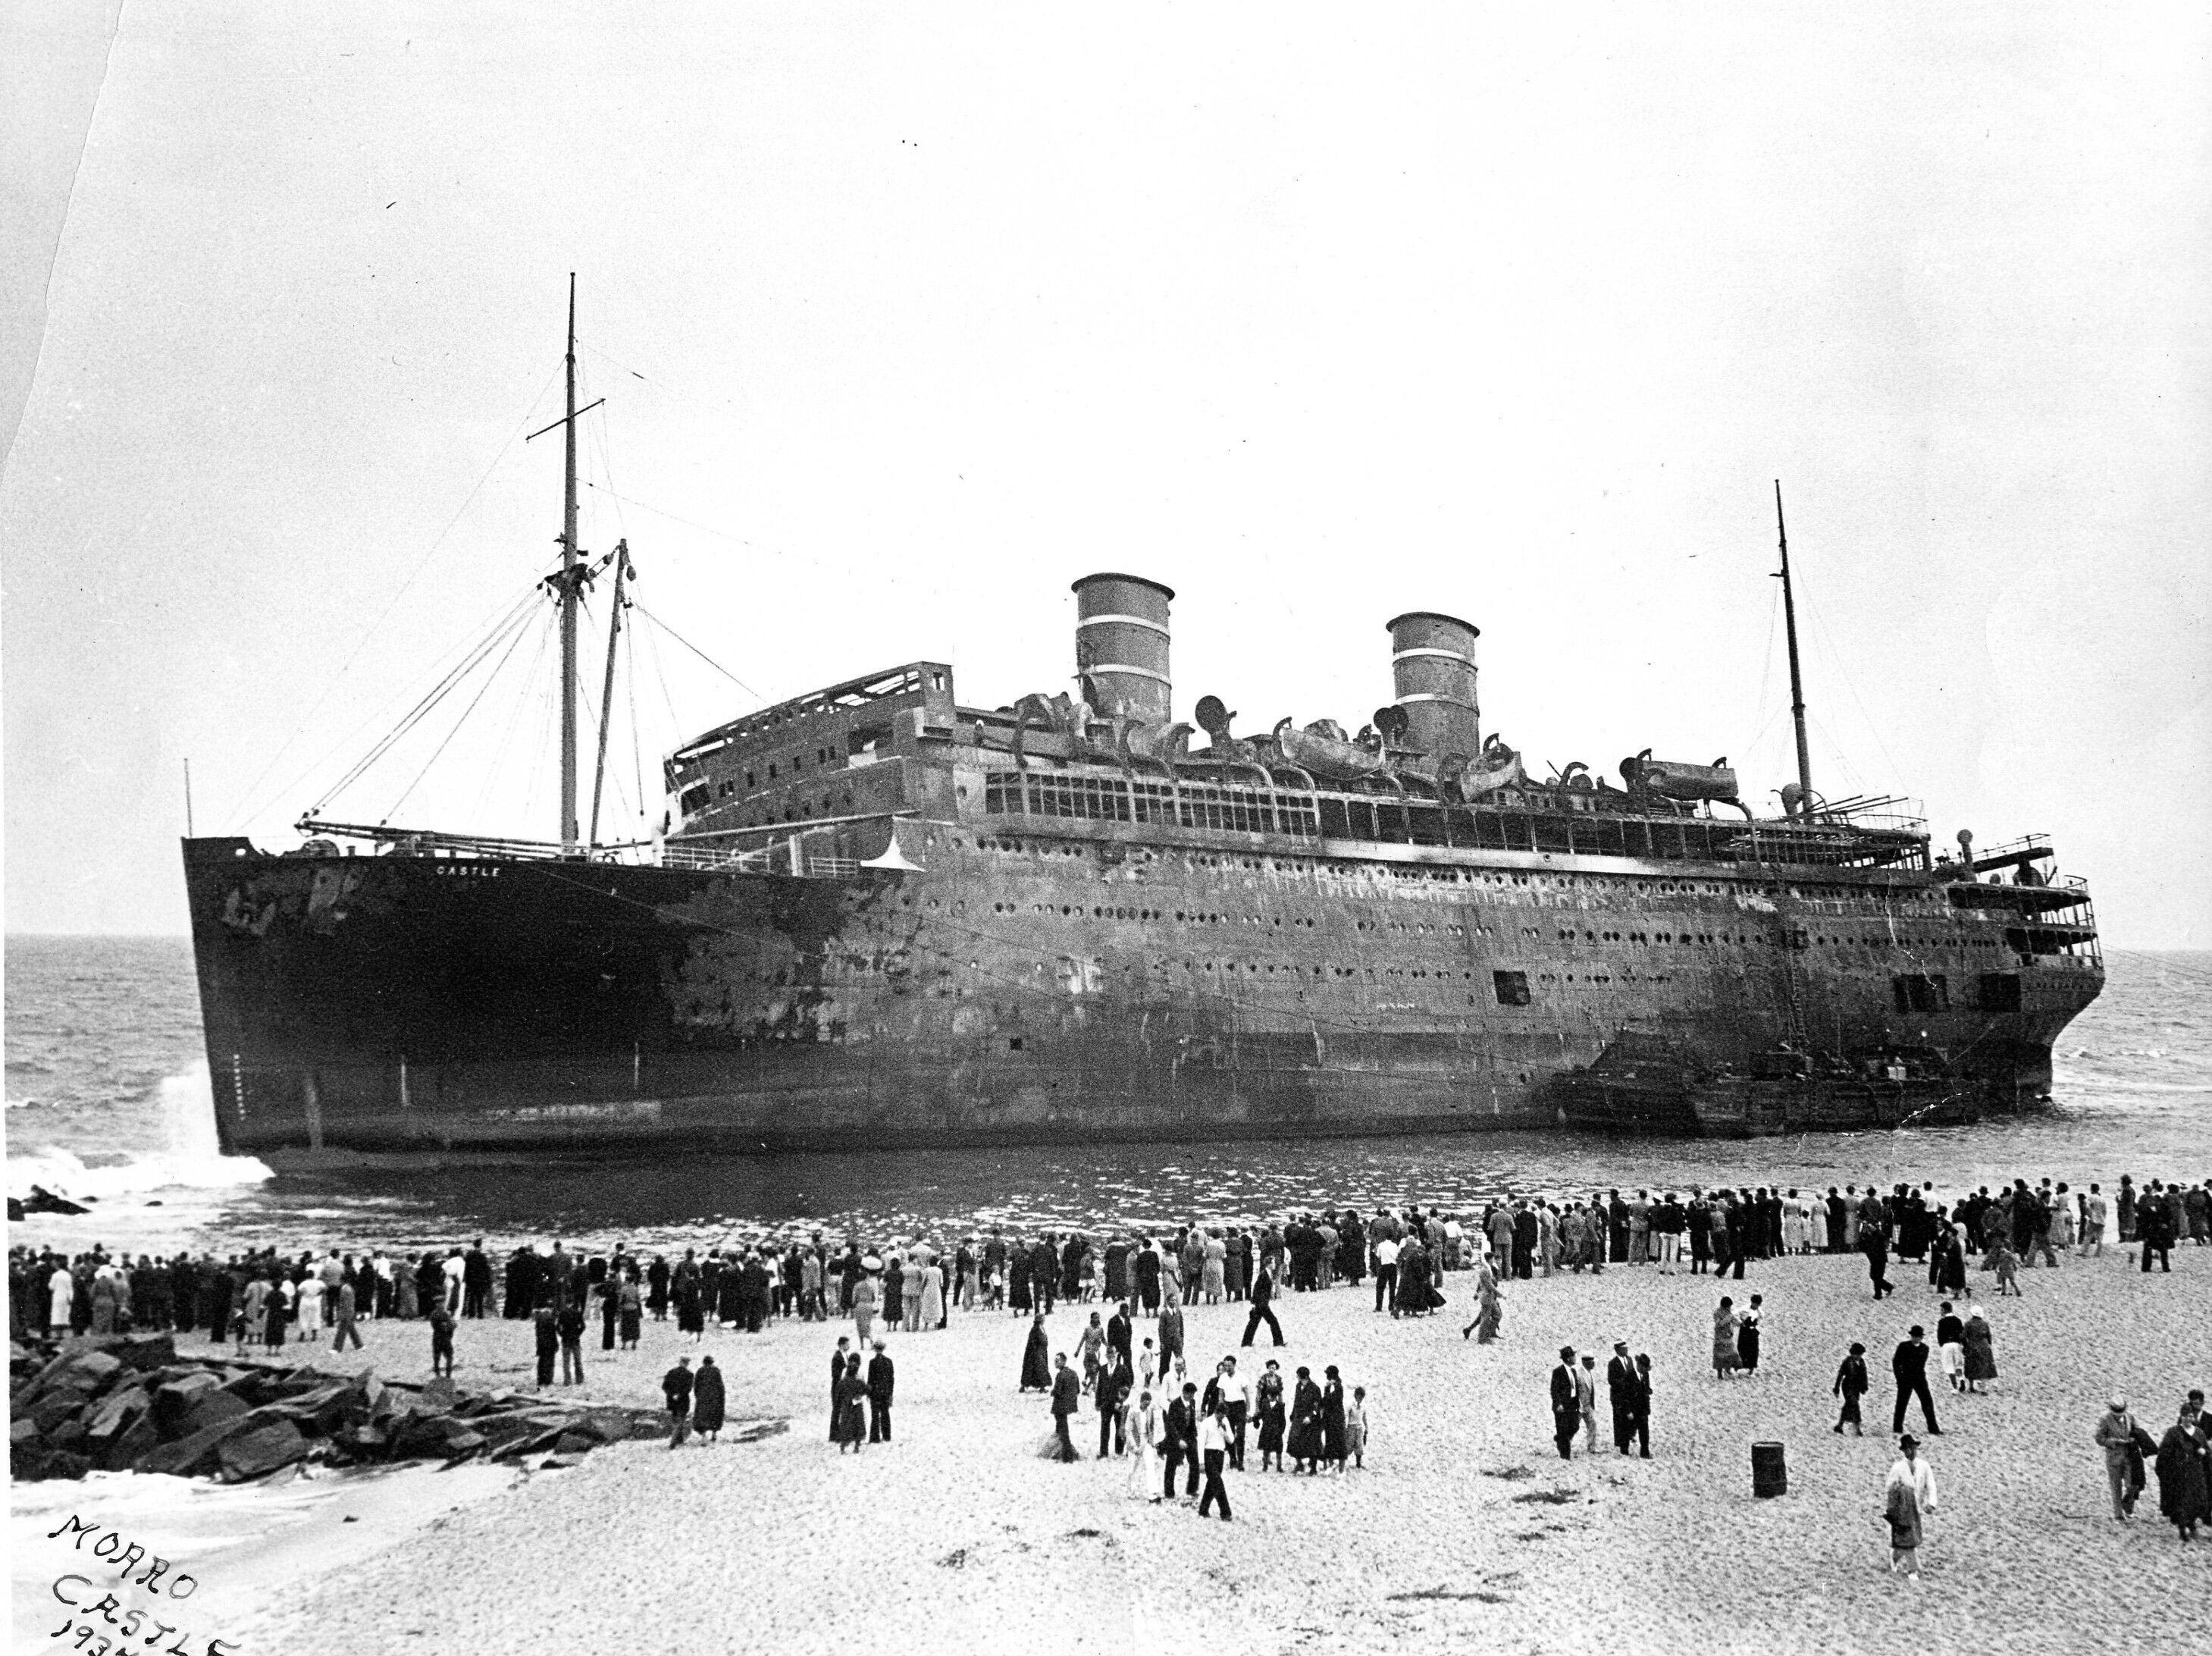 morro castle with lifeboats